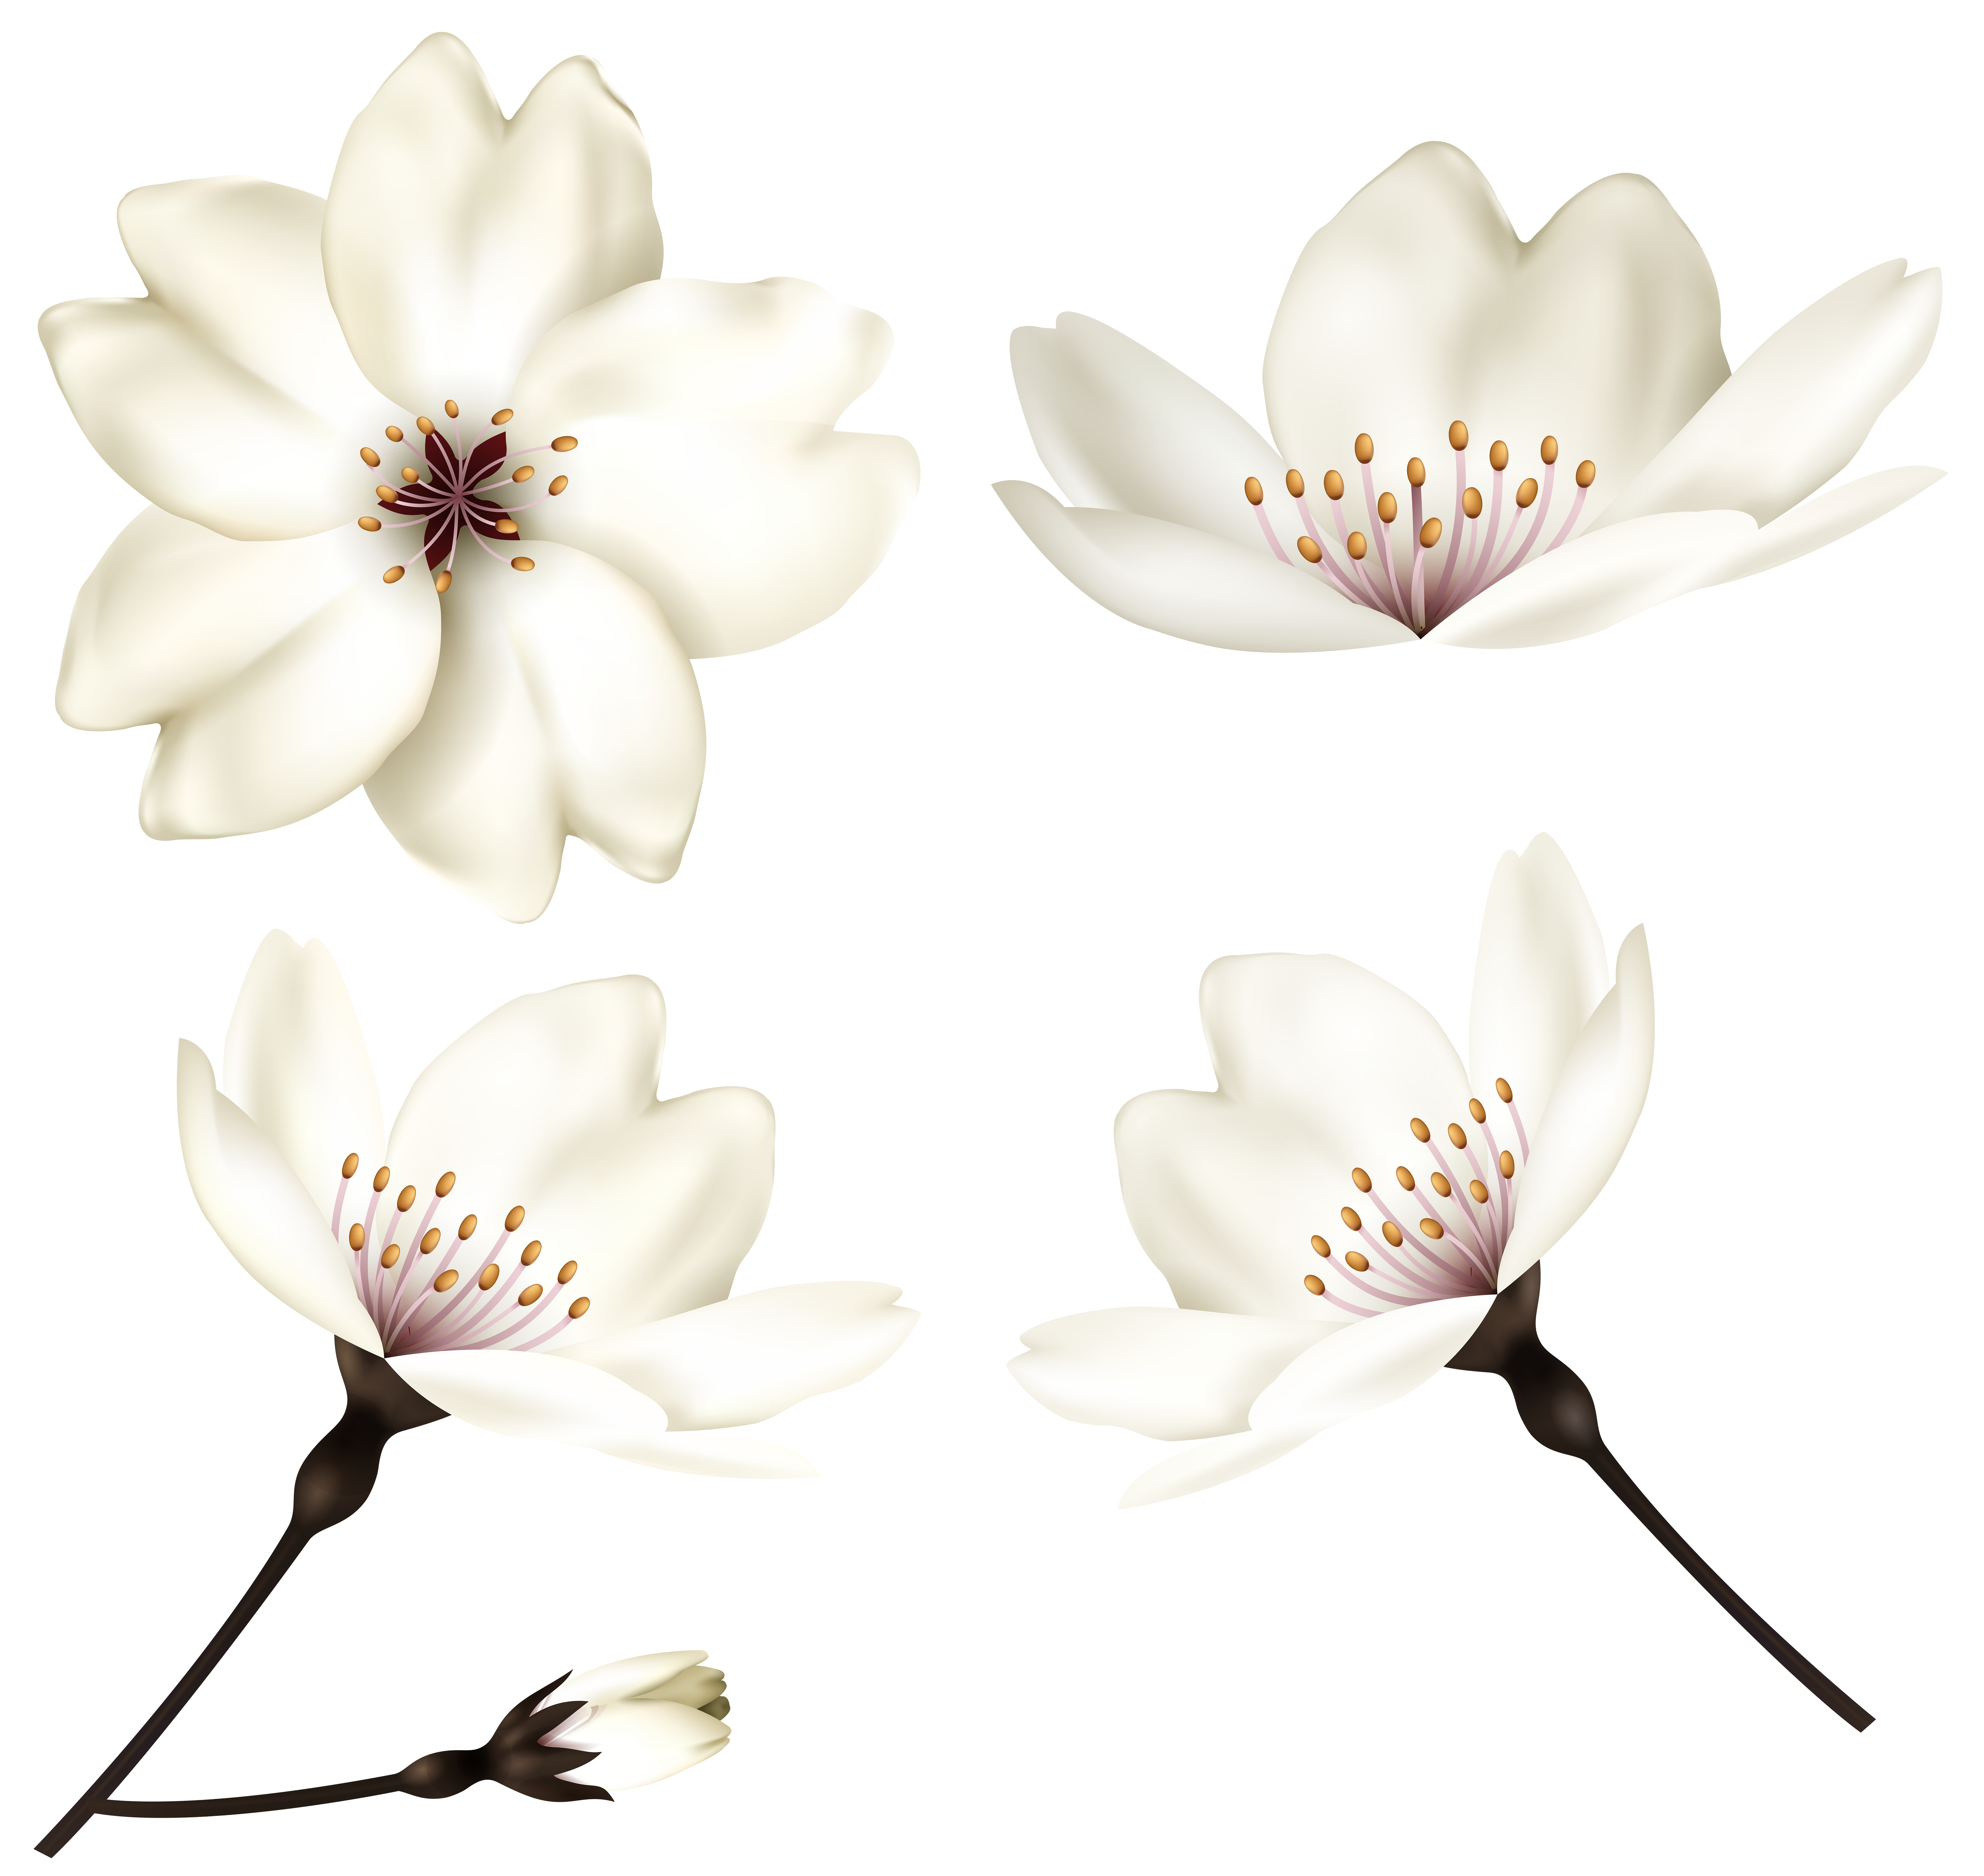 Flowers clip art image. Piano clipart spring